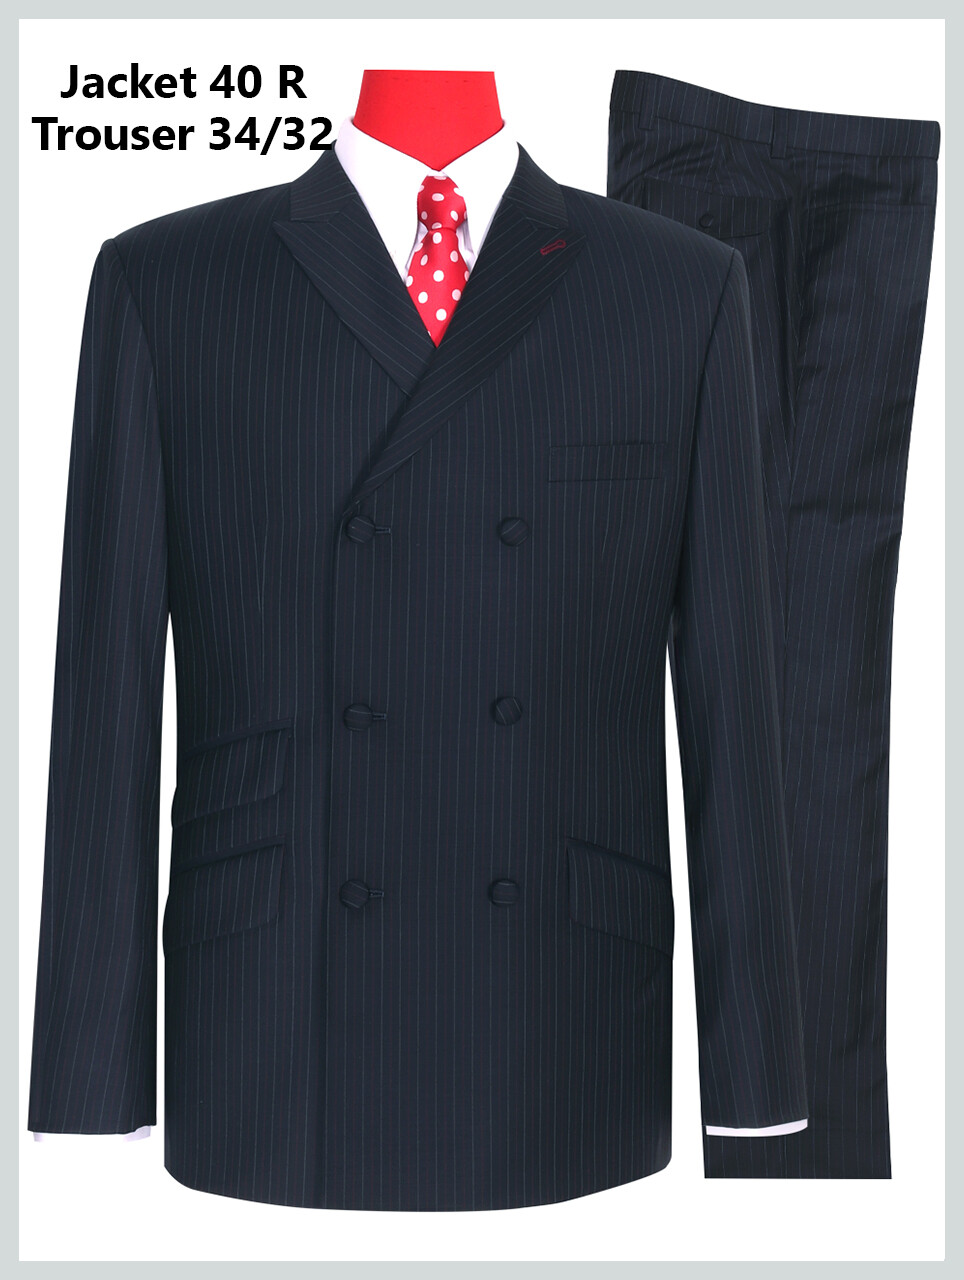 Double Breasted Navy Blue Striped Suit Jacket 40R & 34/32 Trouser